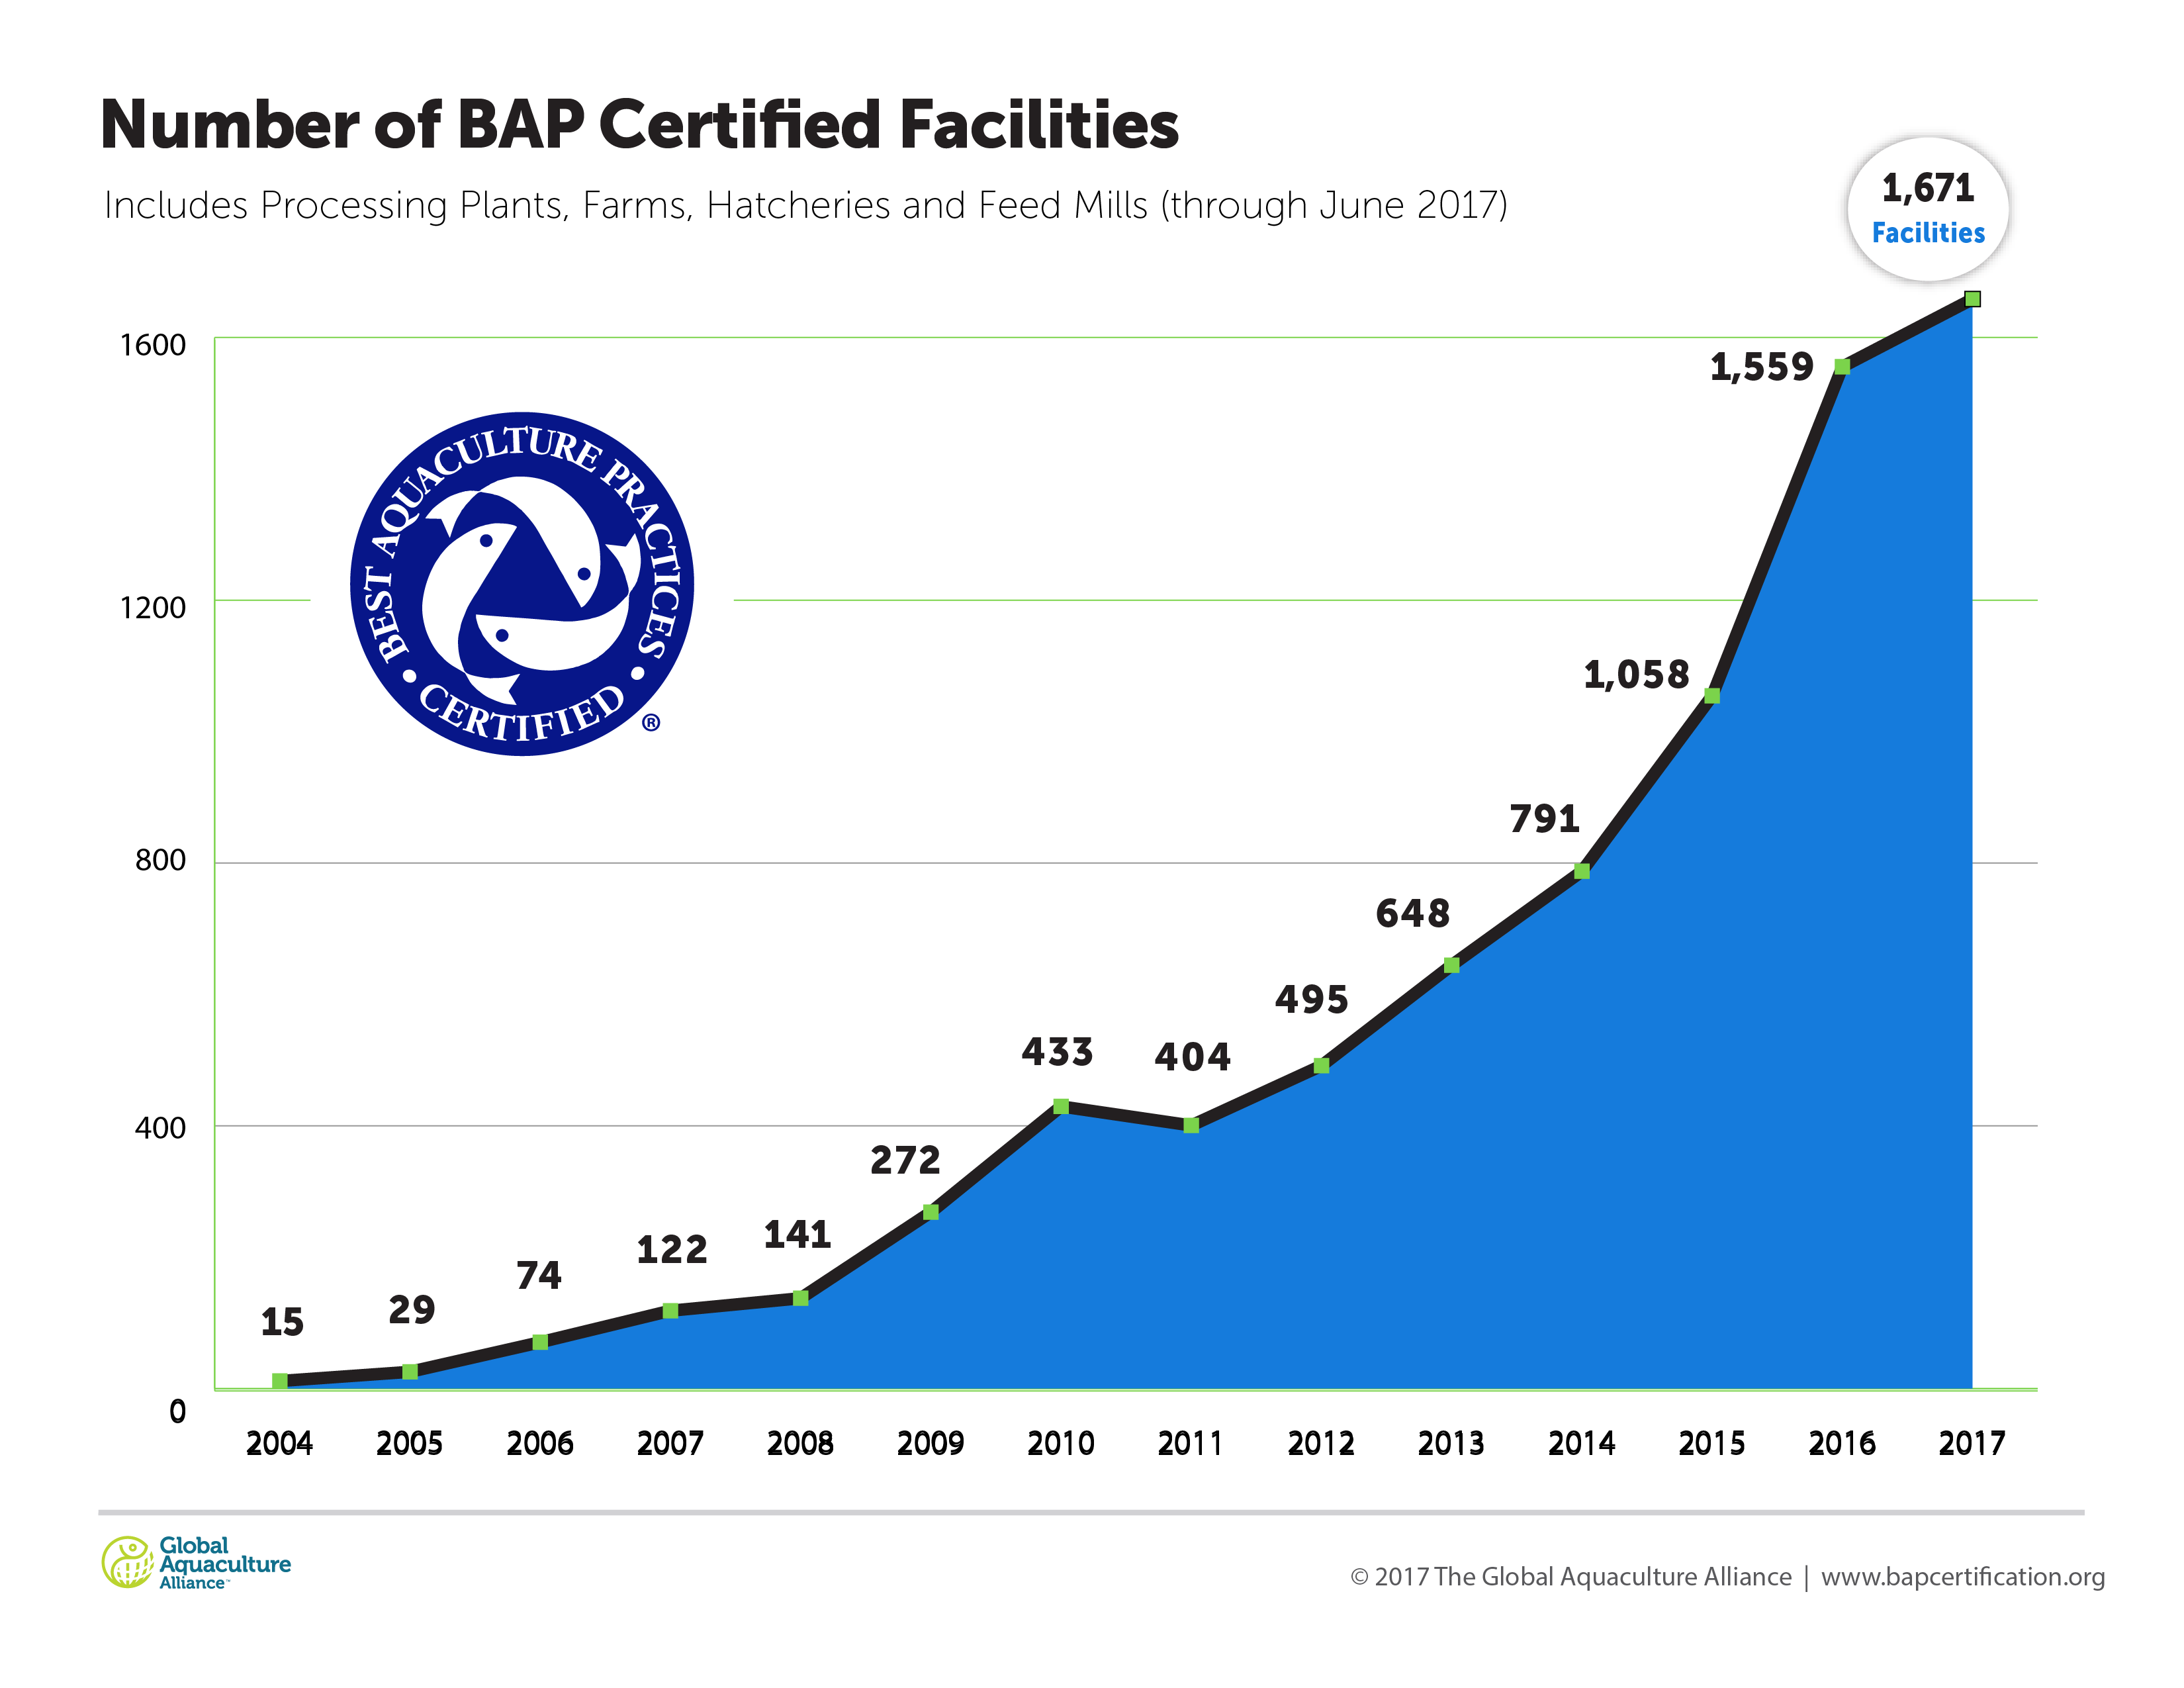 Number of BAP Certified Facilities